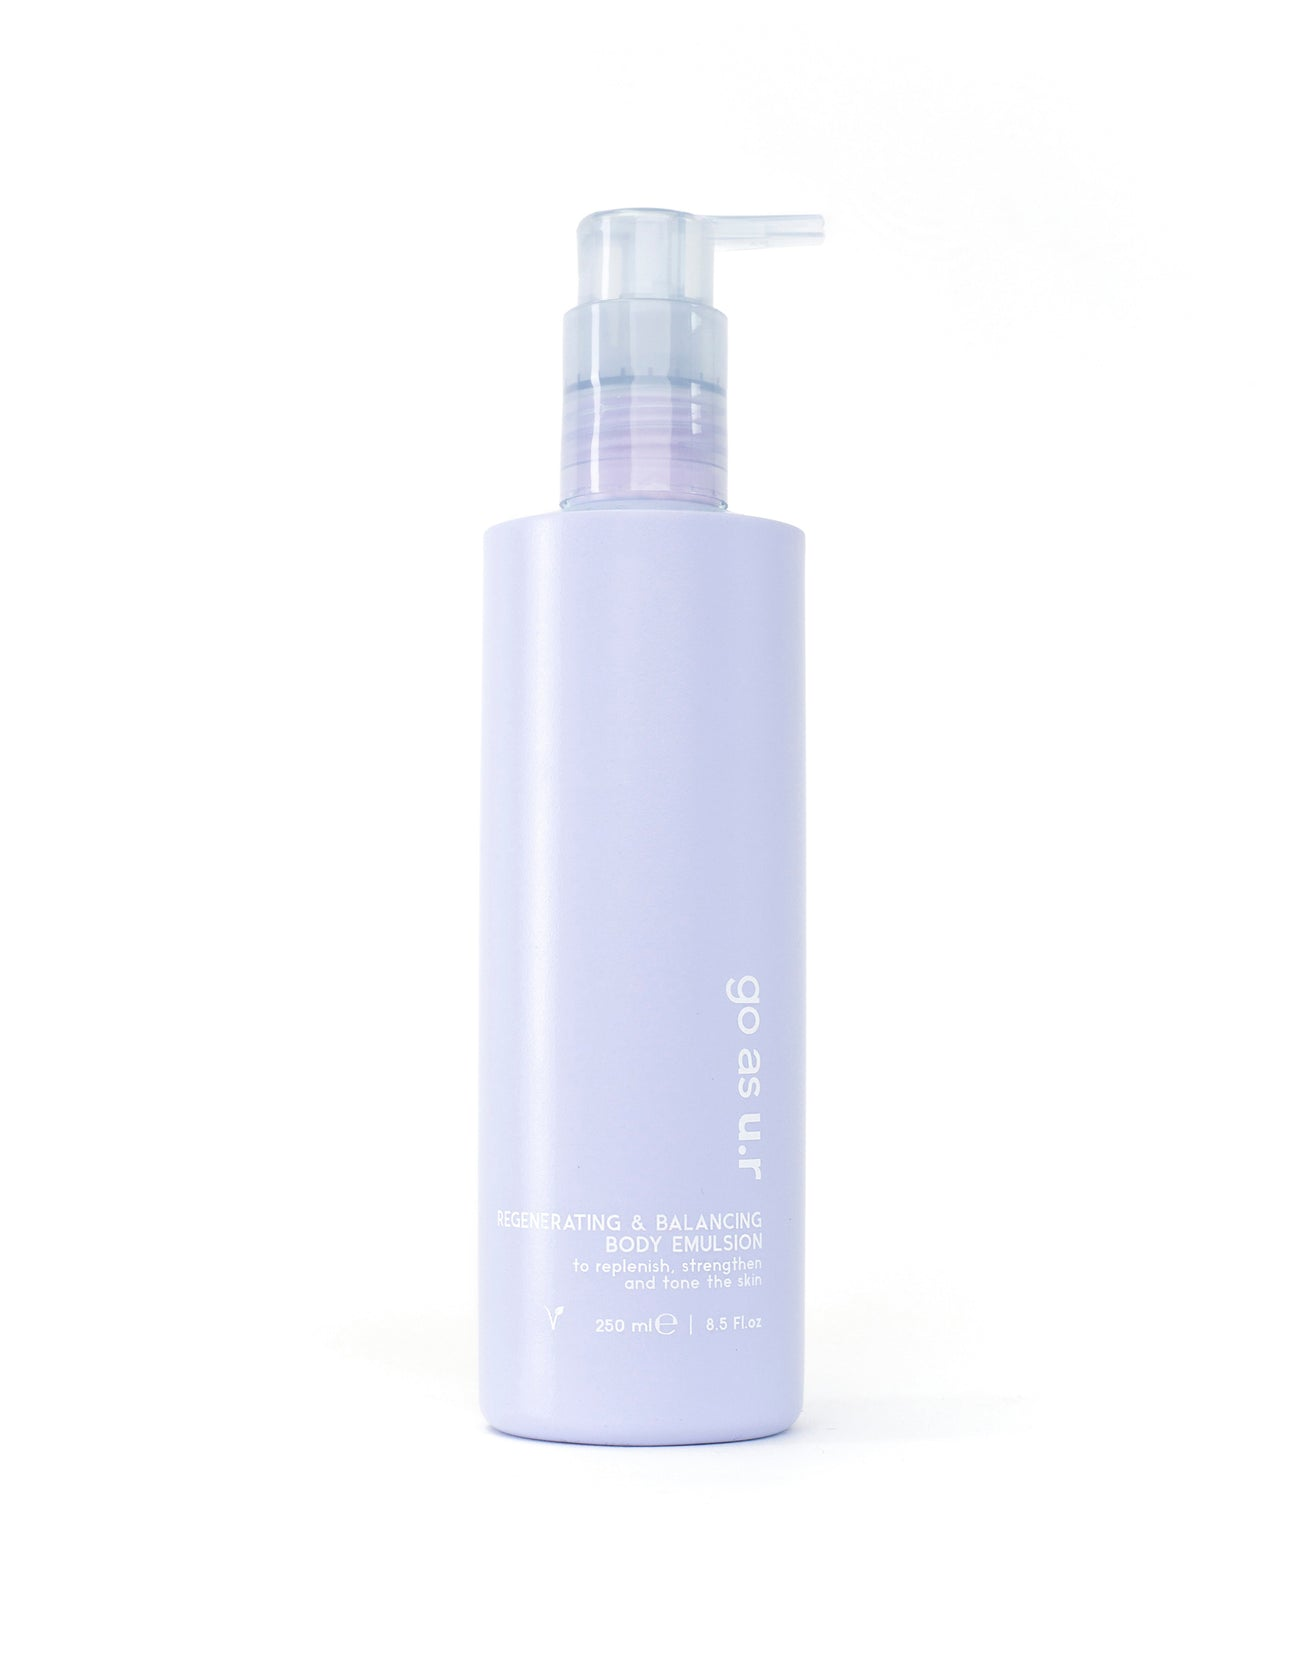 regenerating & balancing body emulsion | 250 ml